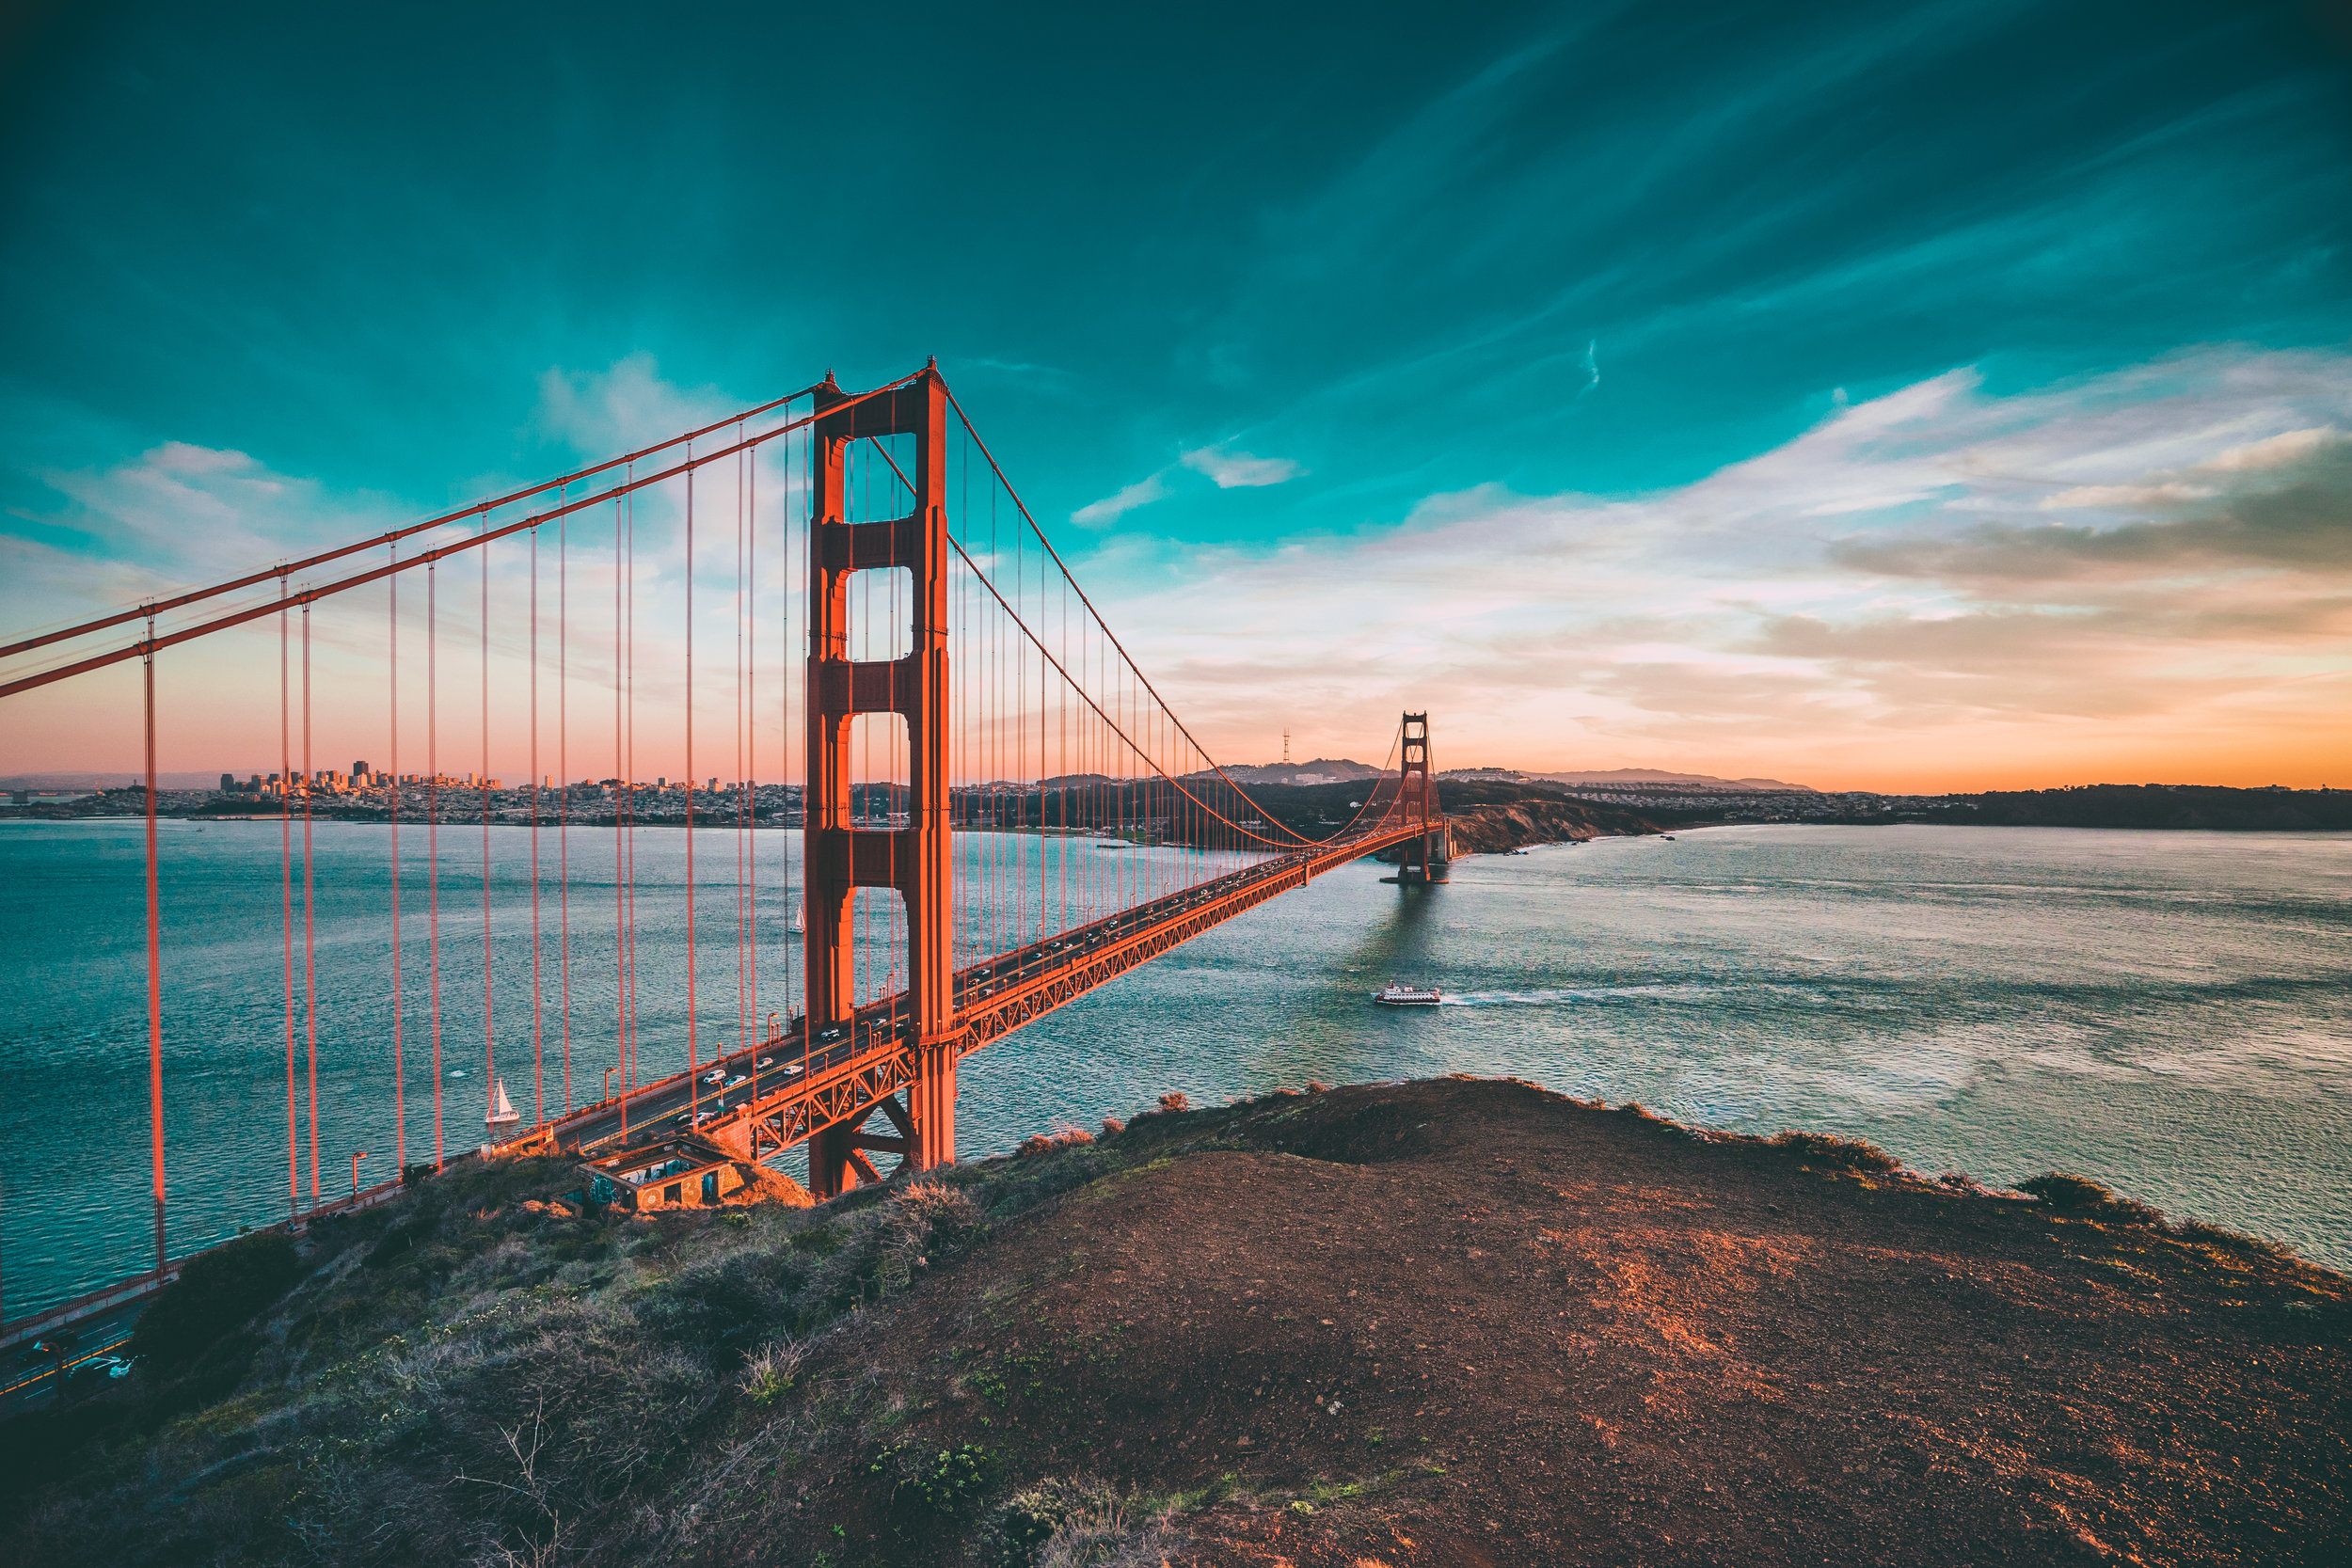 Discover San Francisco with Air New Zealand - Return Economy Class flights departing Auckland and 3 nights from $2,501*(NZD)Sale ends: 30 Nov 2019Travel Period: Commenced 20 Jan 2019 and completed 15 Dec 2019 (unless otherwise specified)